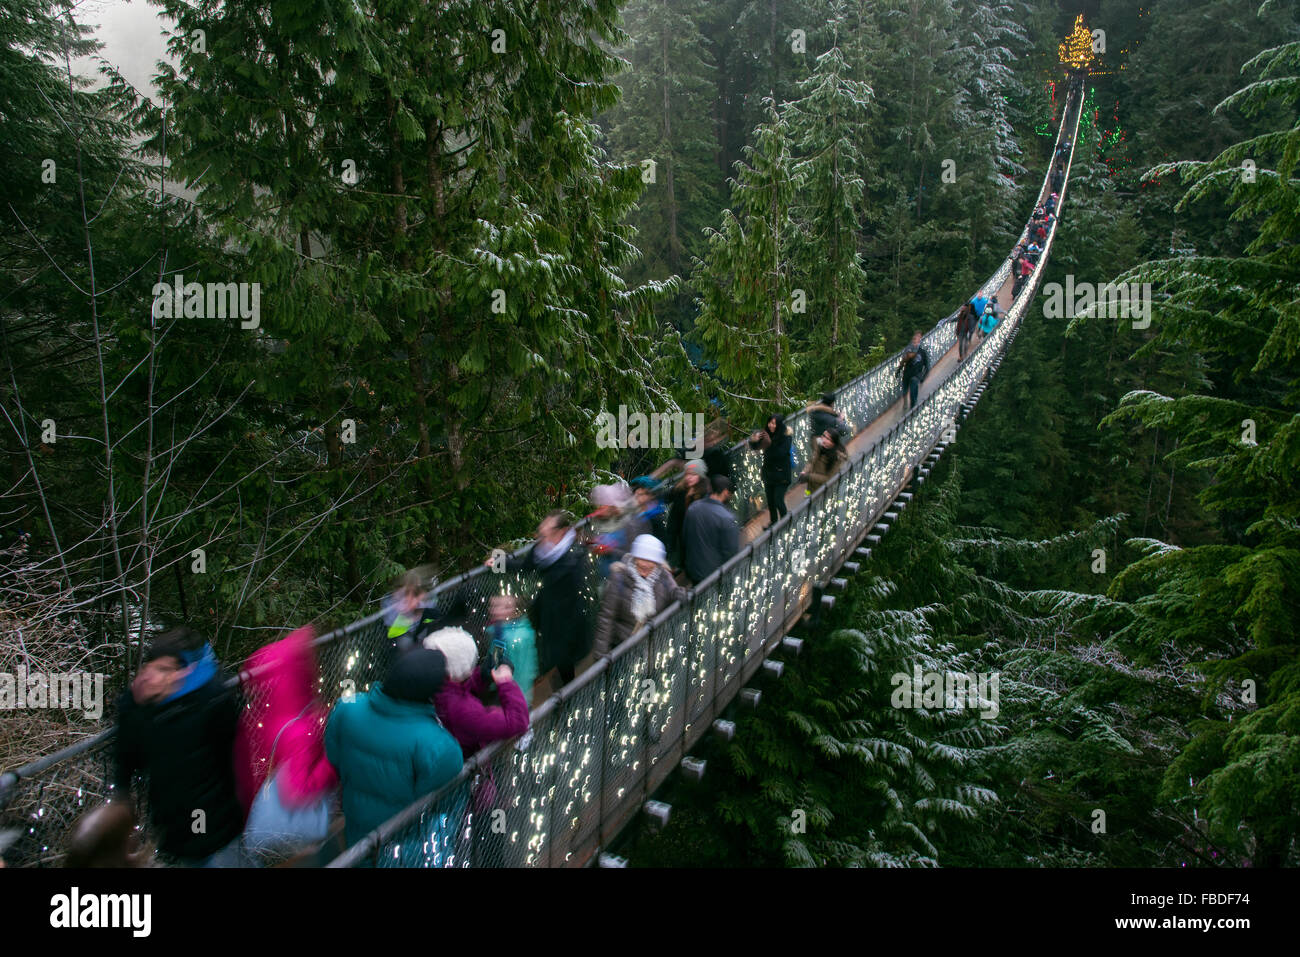 Capilano Suspension Bridge, Vancouver, British Columbia, Canada Photo Stock